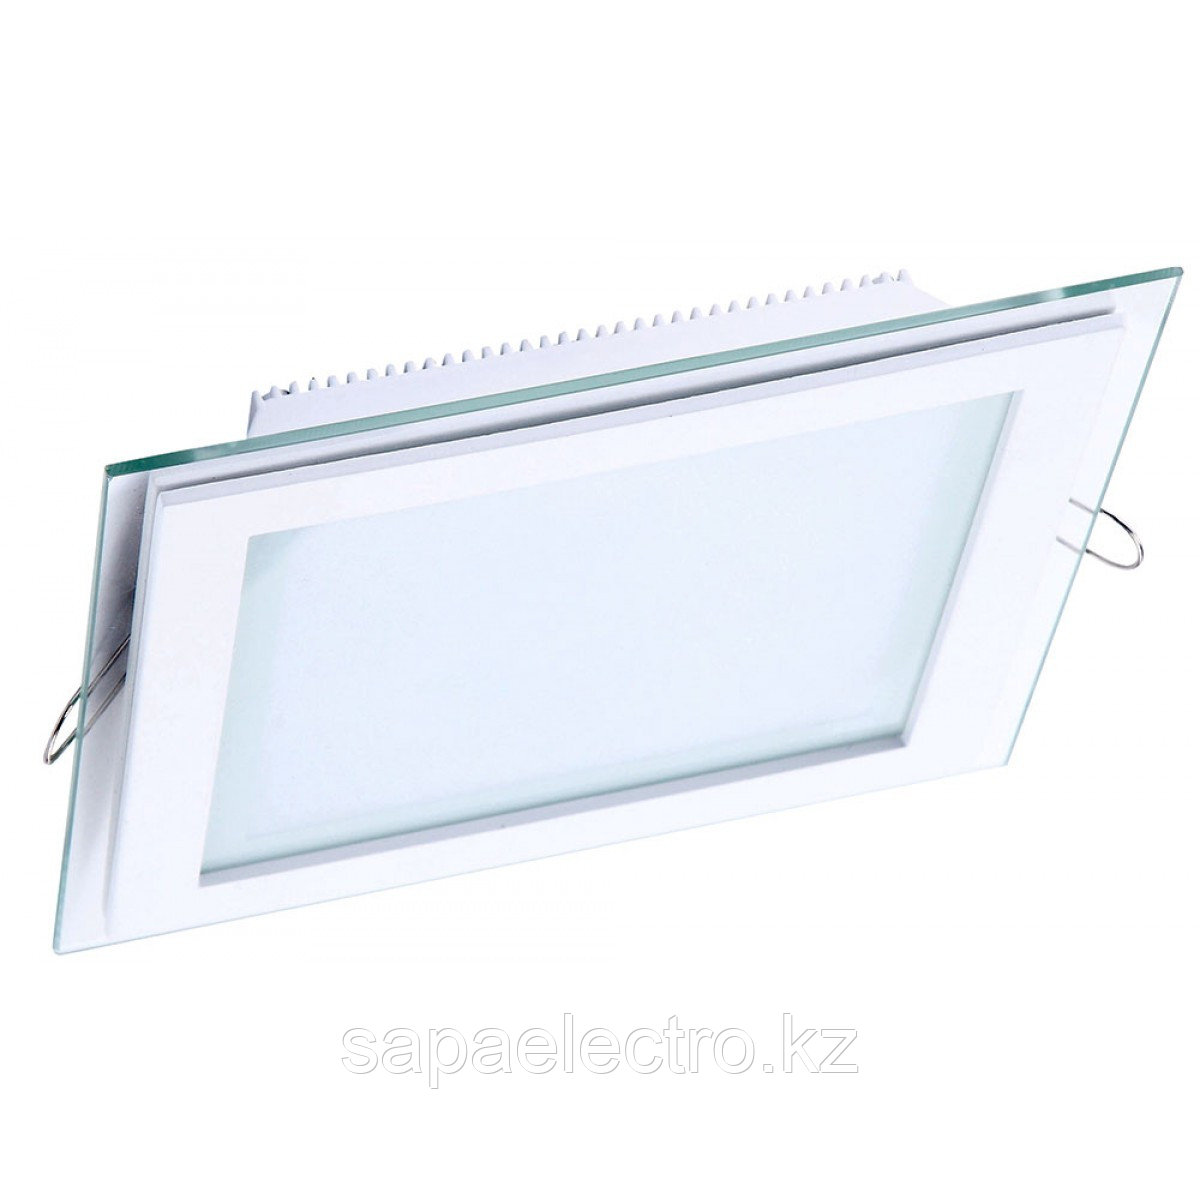 Свет-к DL LED GLASS KVADRO PANEL 12W 3000K(TS)20шт,